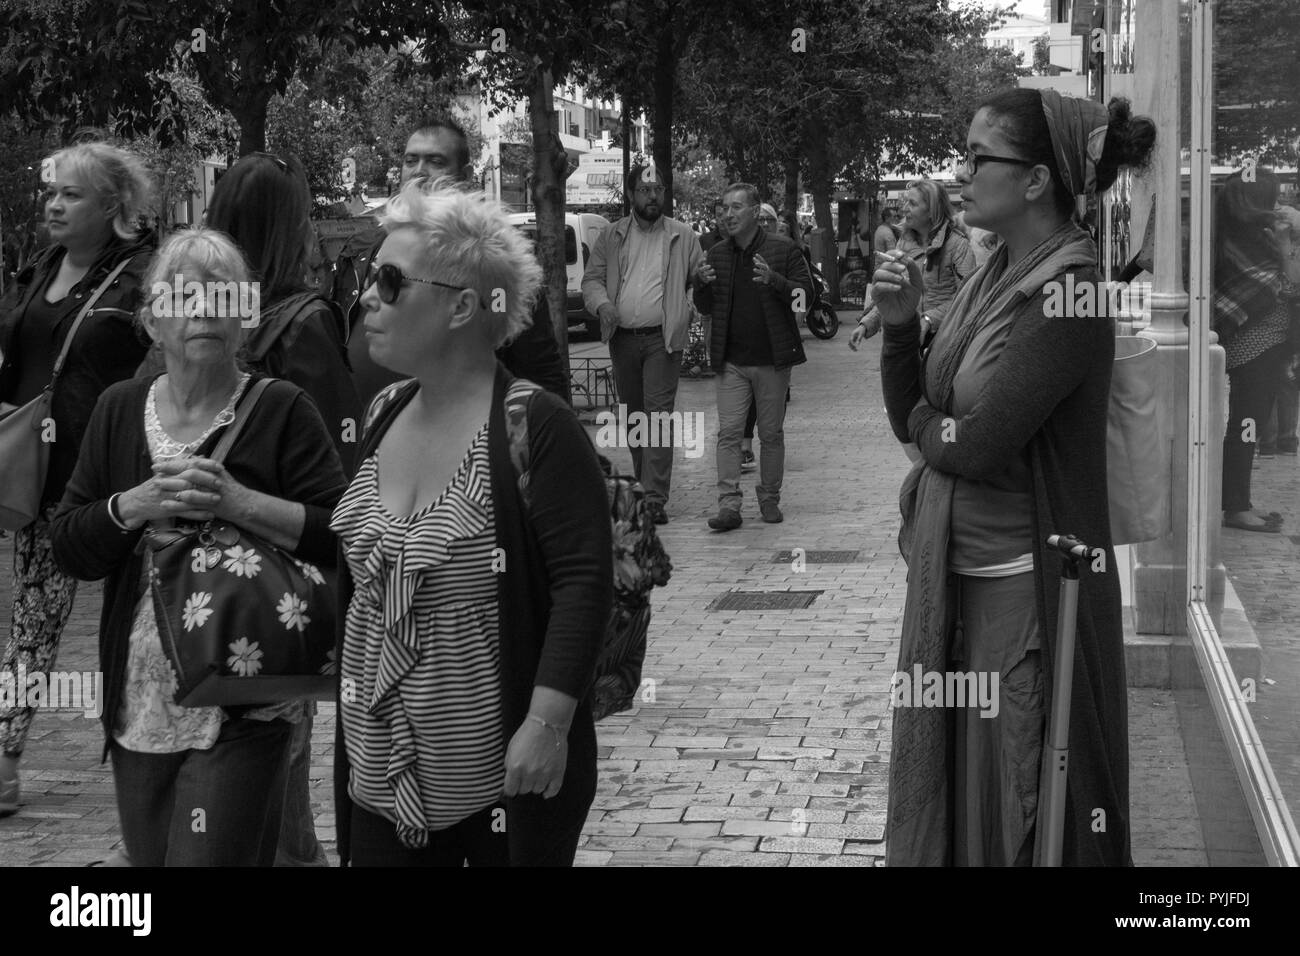 Saturday morning people walking in the city's center, Athens Greece. - Stock Image